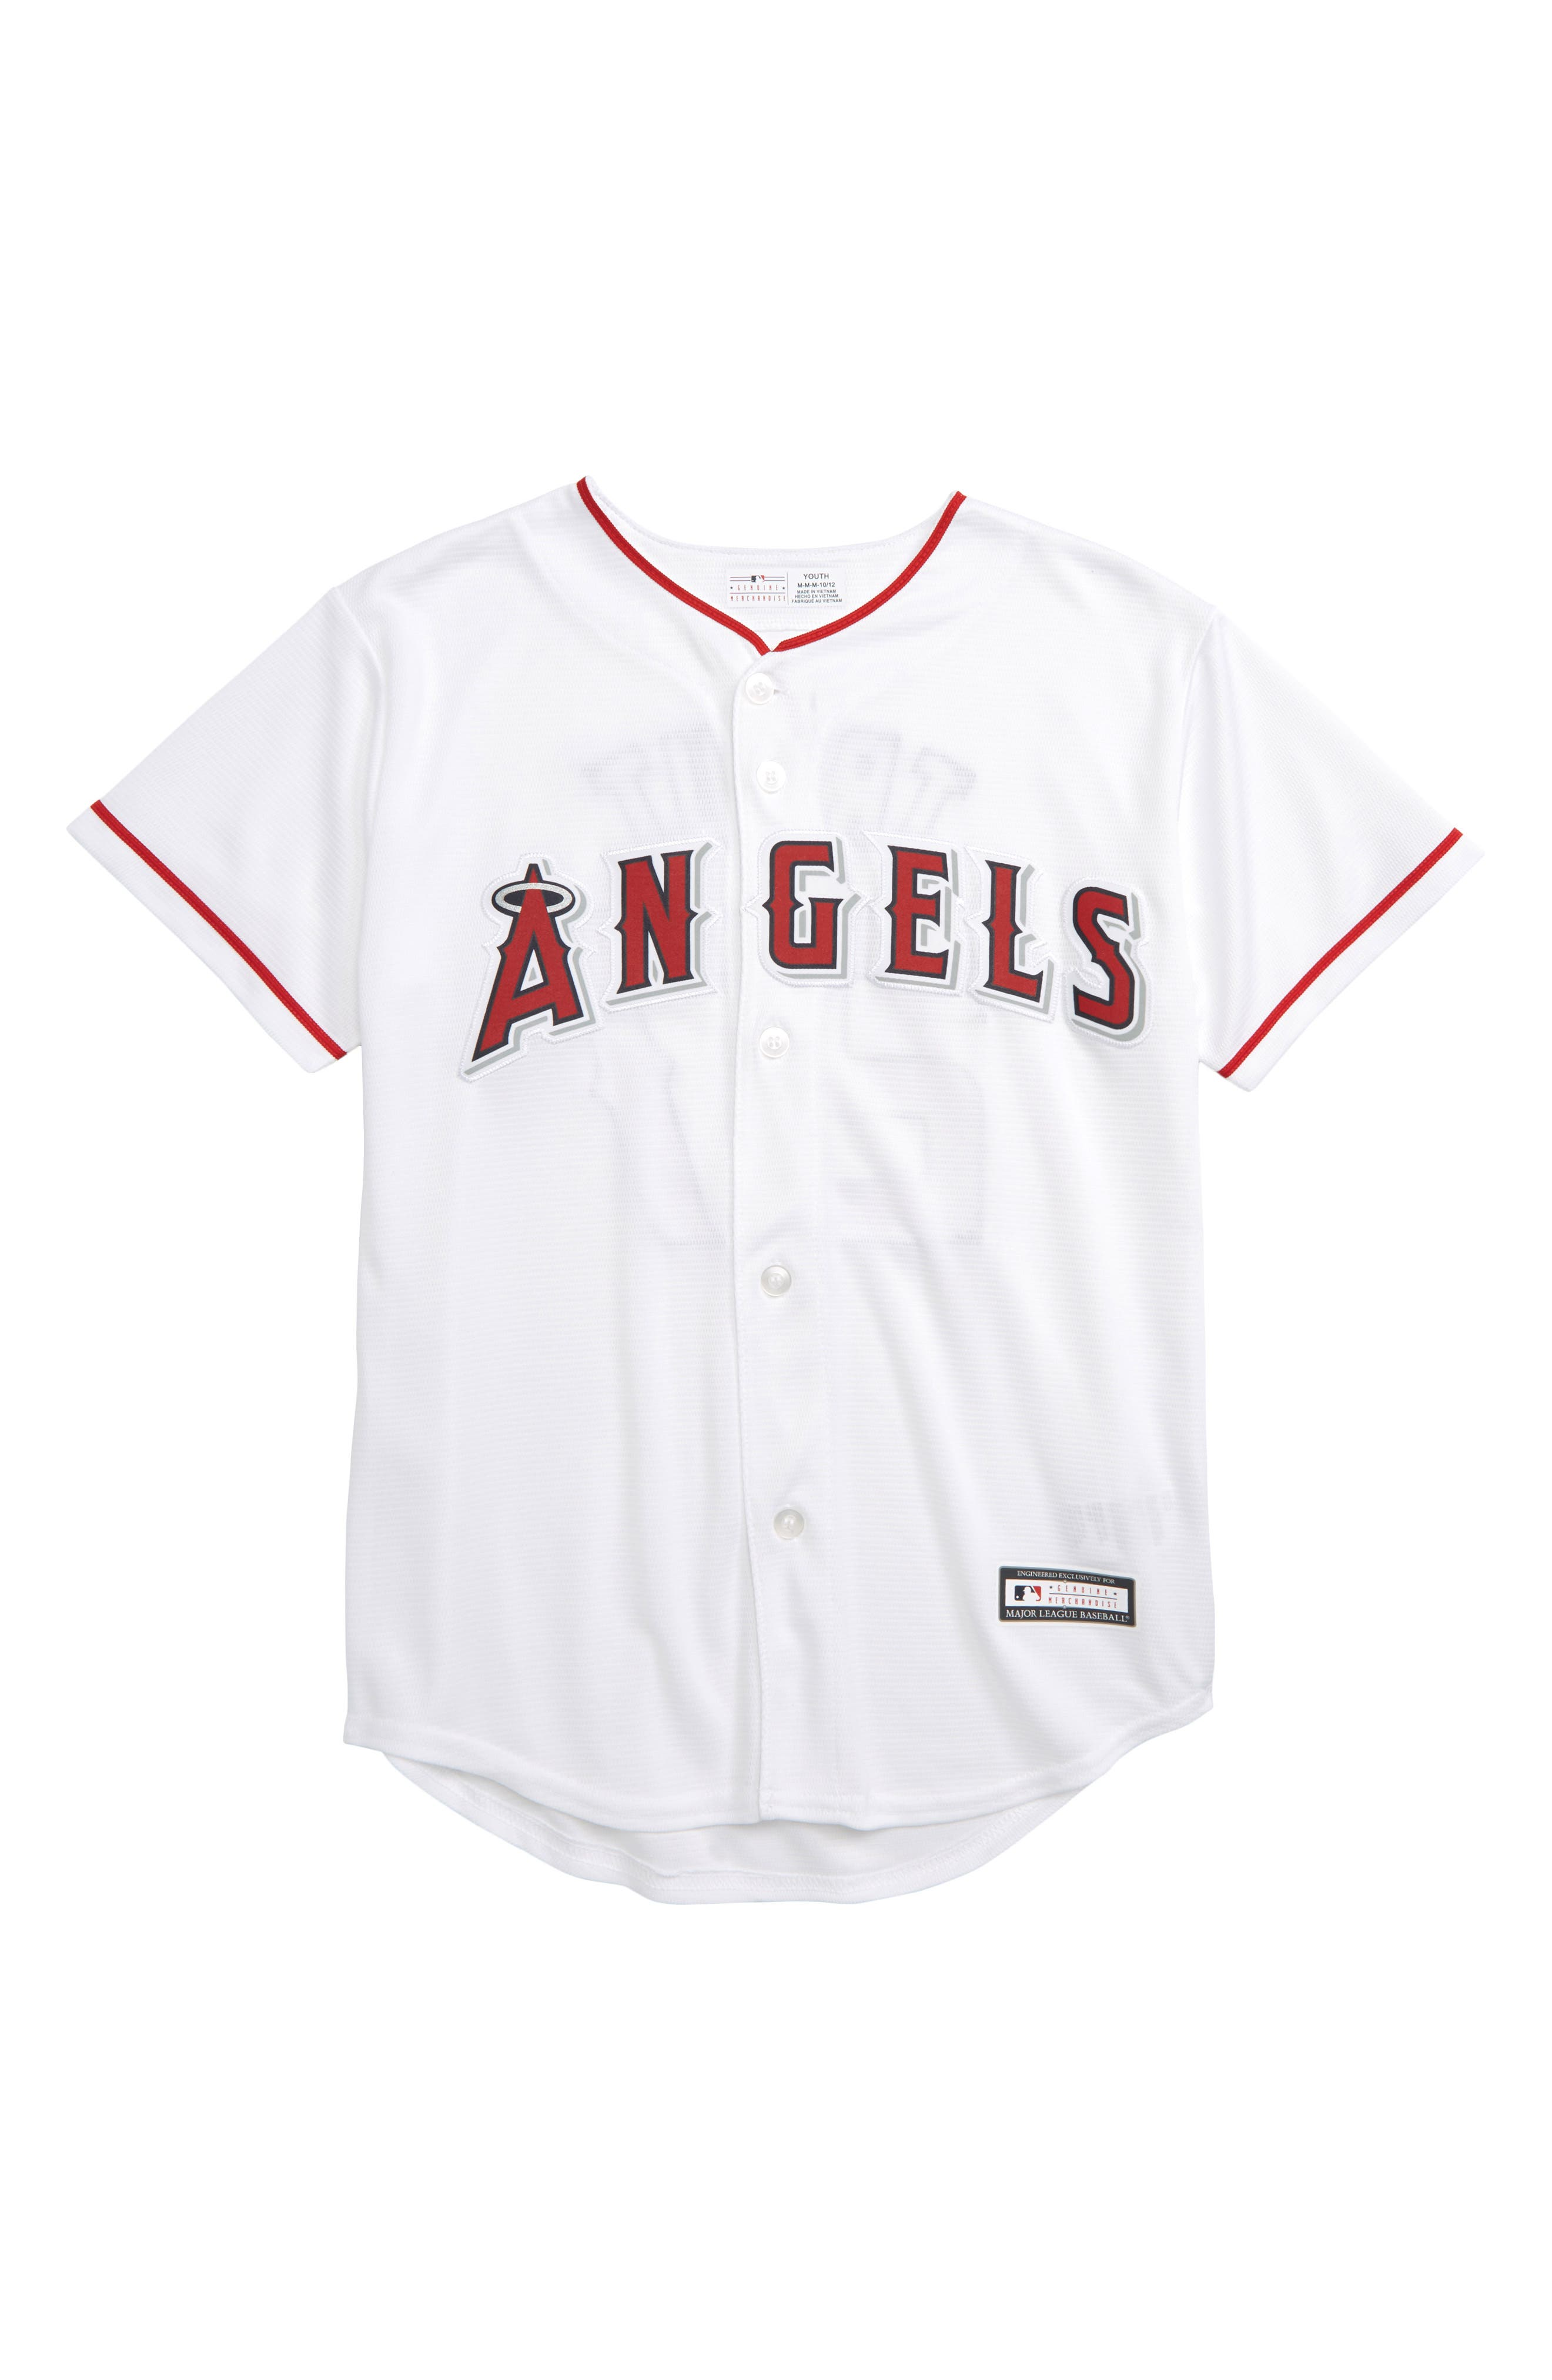 Los Angeles Angels - Mike Trout Baseball Jersey,                             Main thumbnail 1, color,                             White